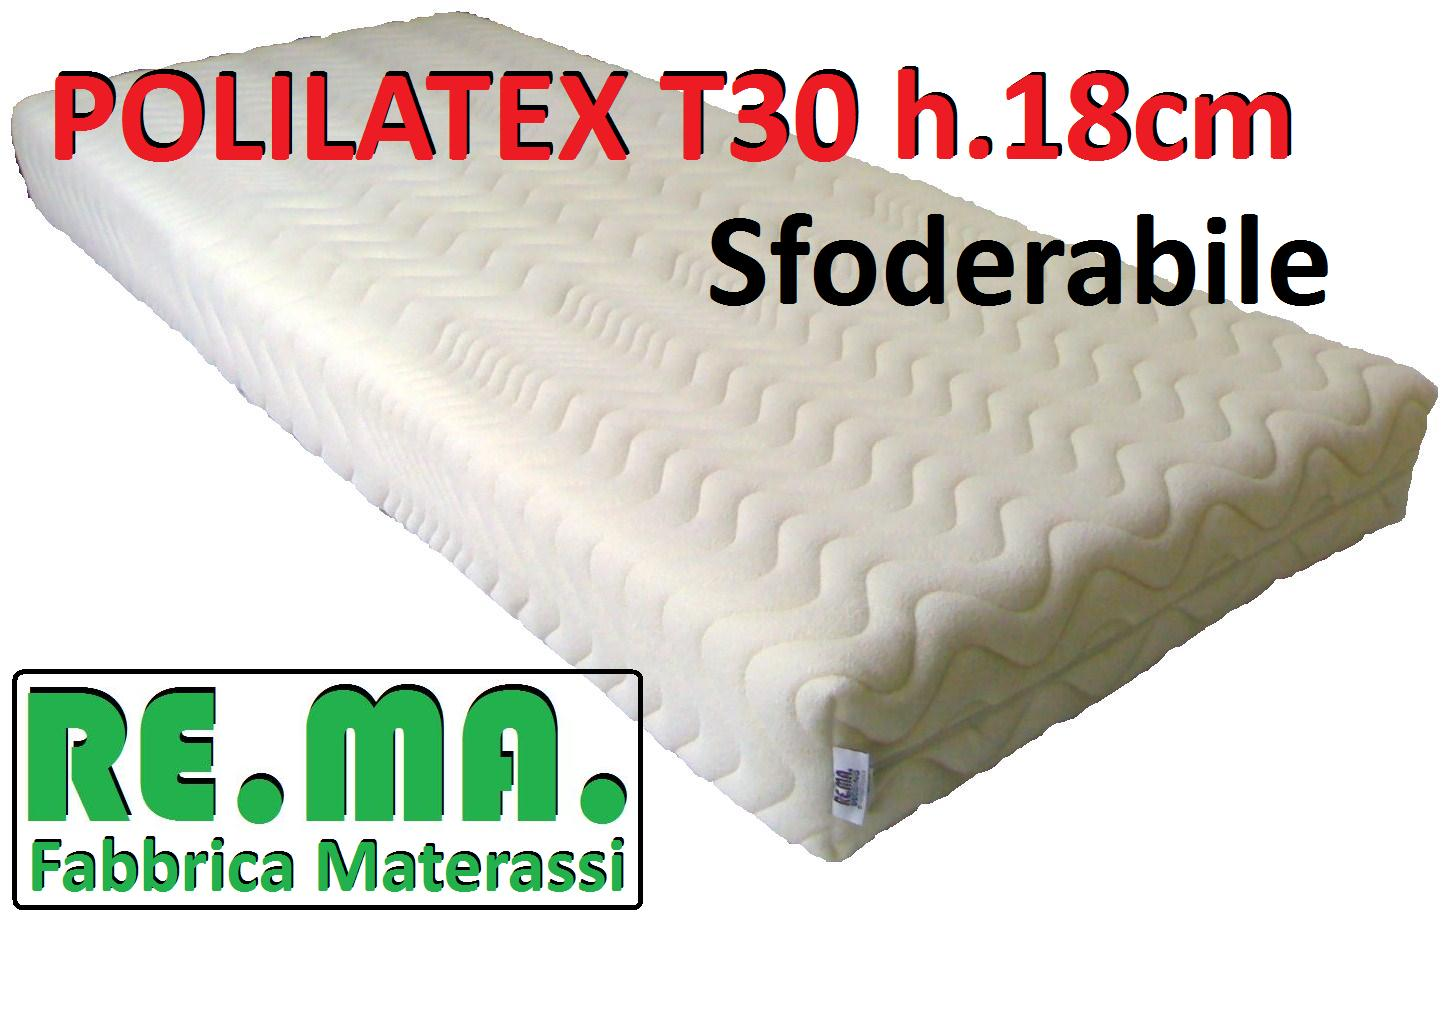 Materasso in Polilatex mod. EasyCotton